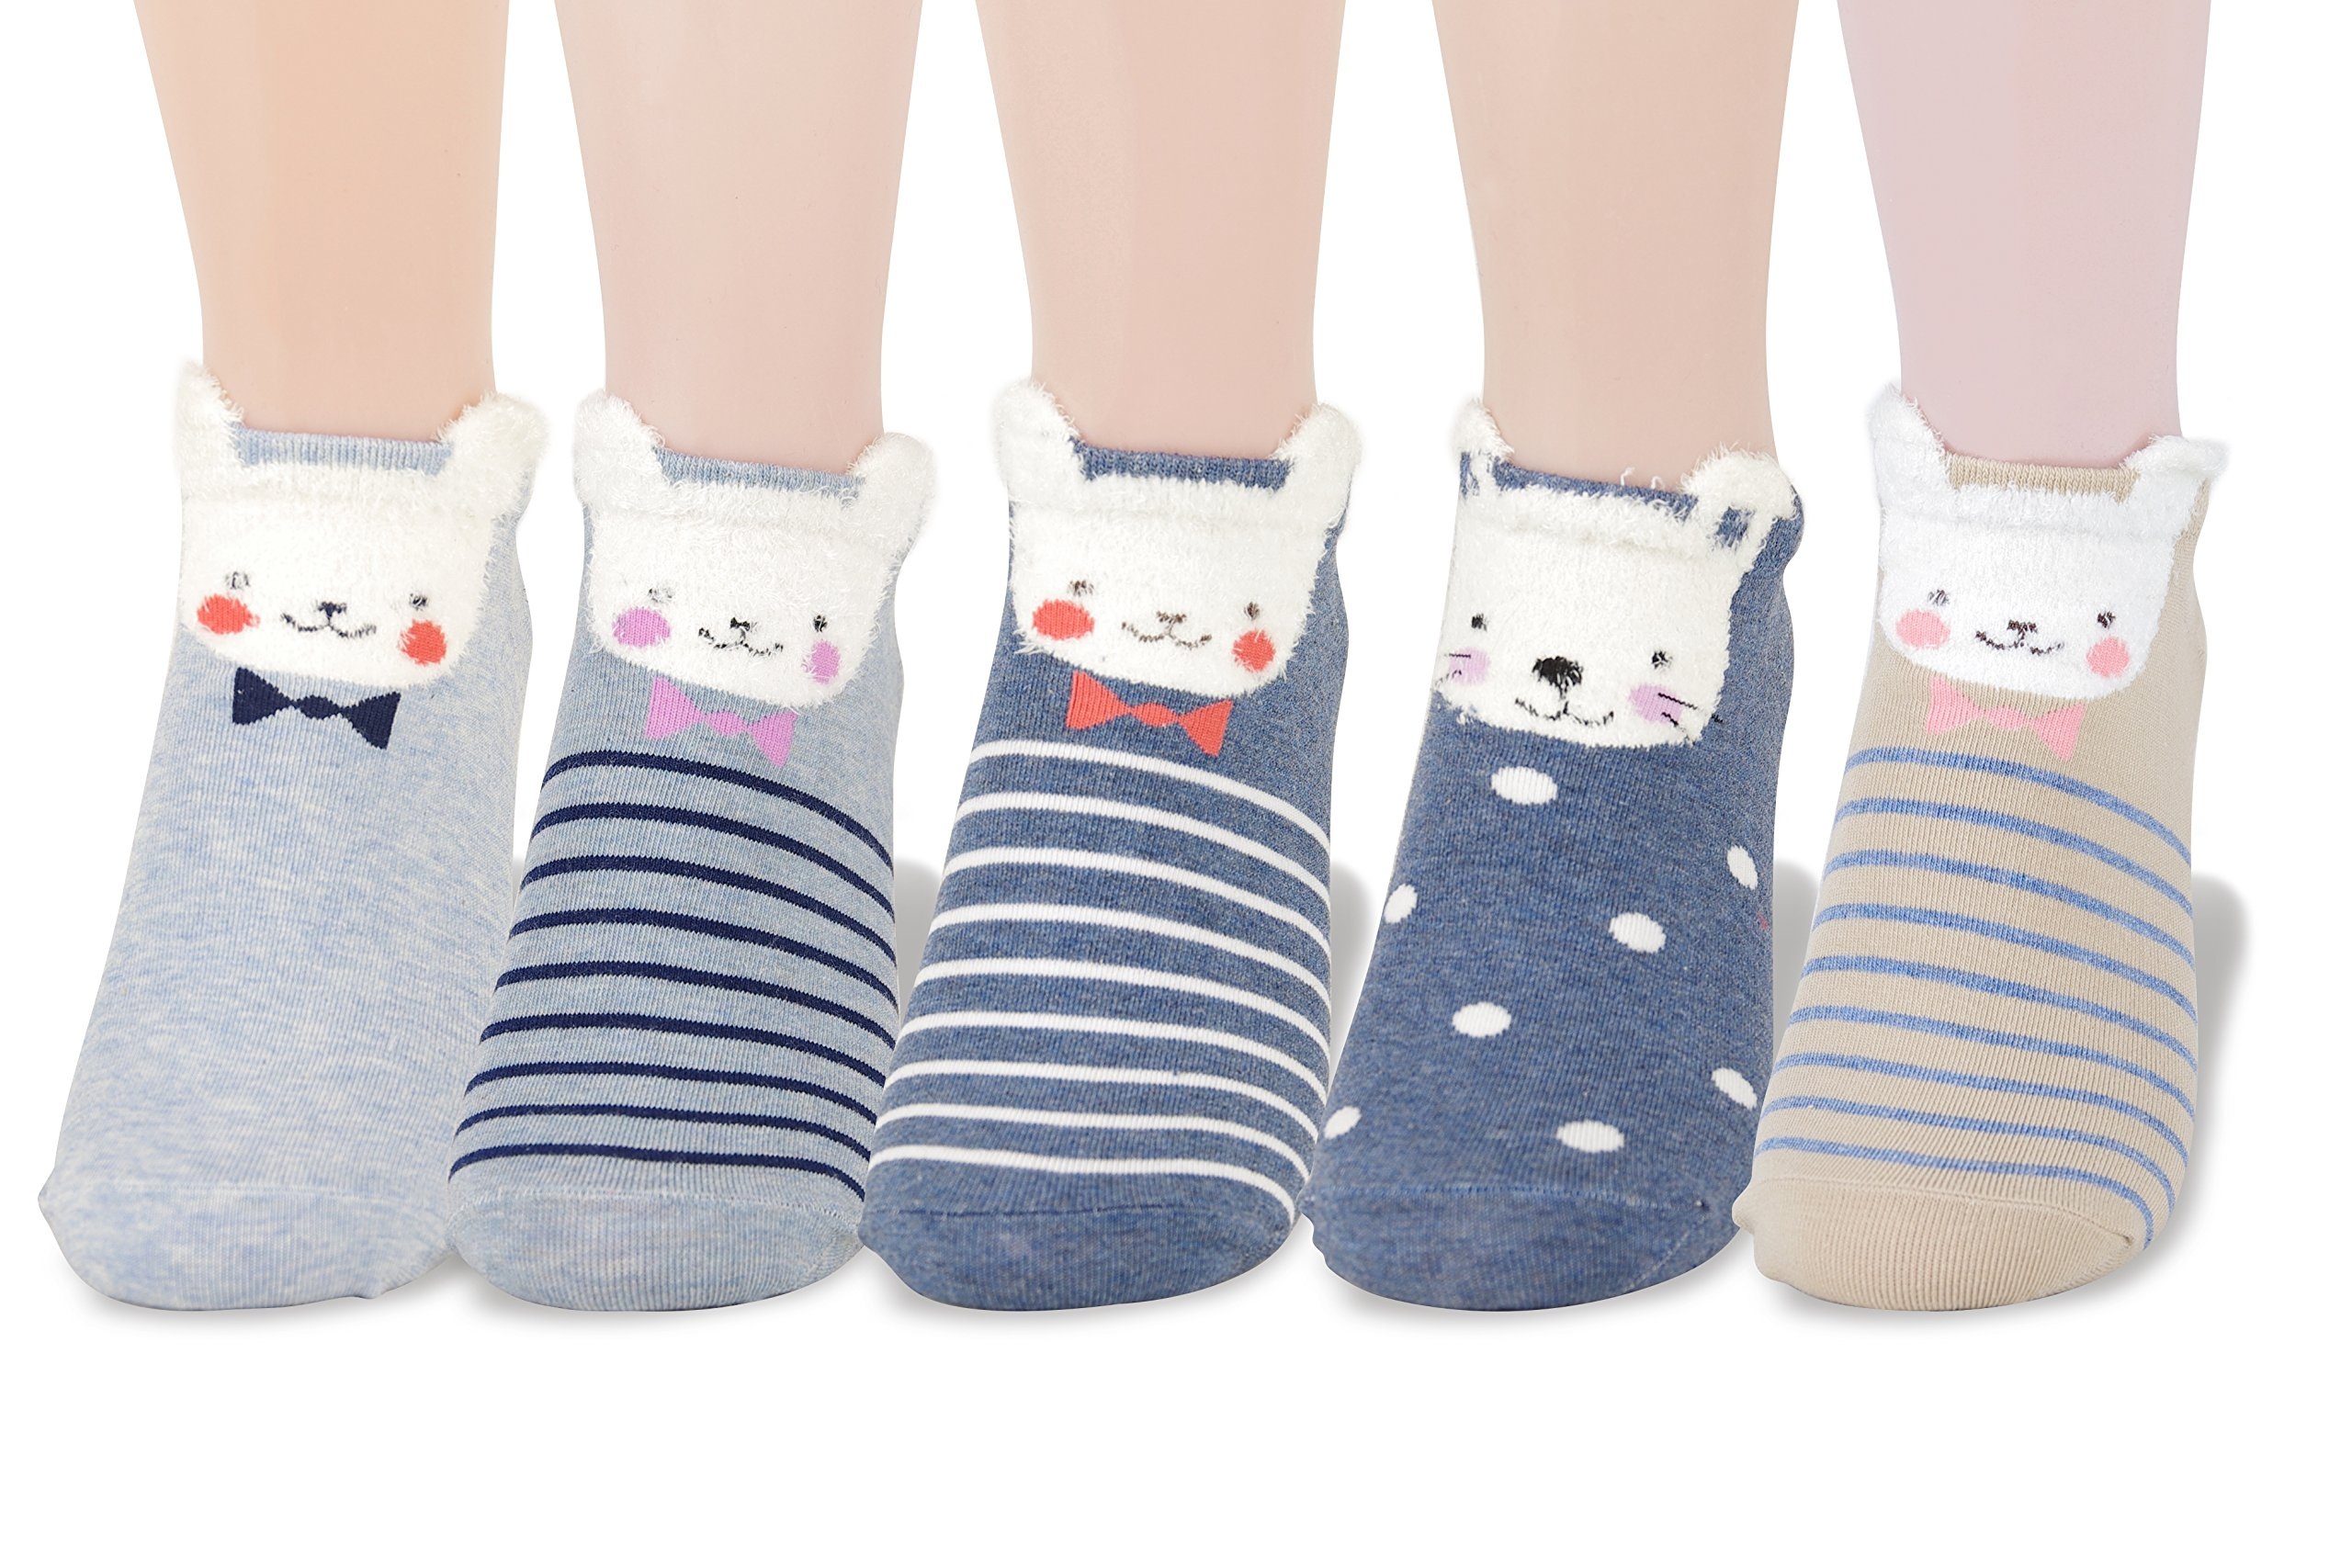 LL&Love 100% Cotton, Cute, Funny and Fashionable Casual Women's Low Cut Animal Socks (Style 12)